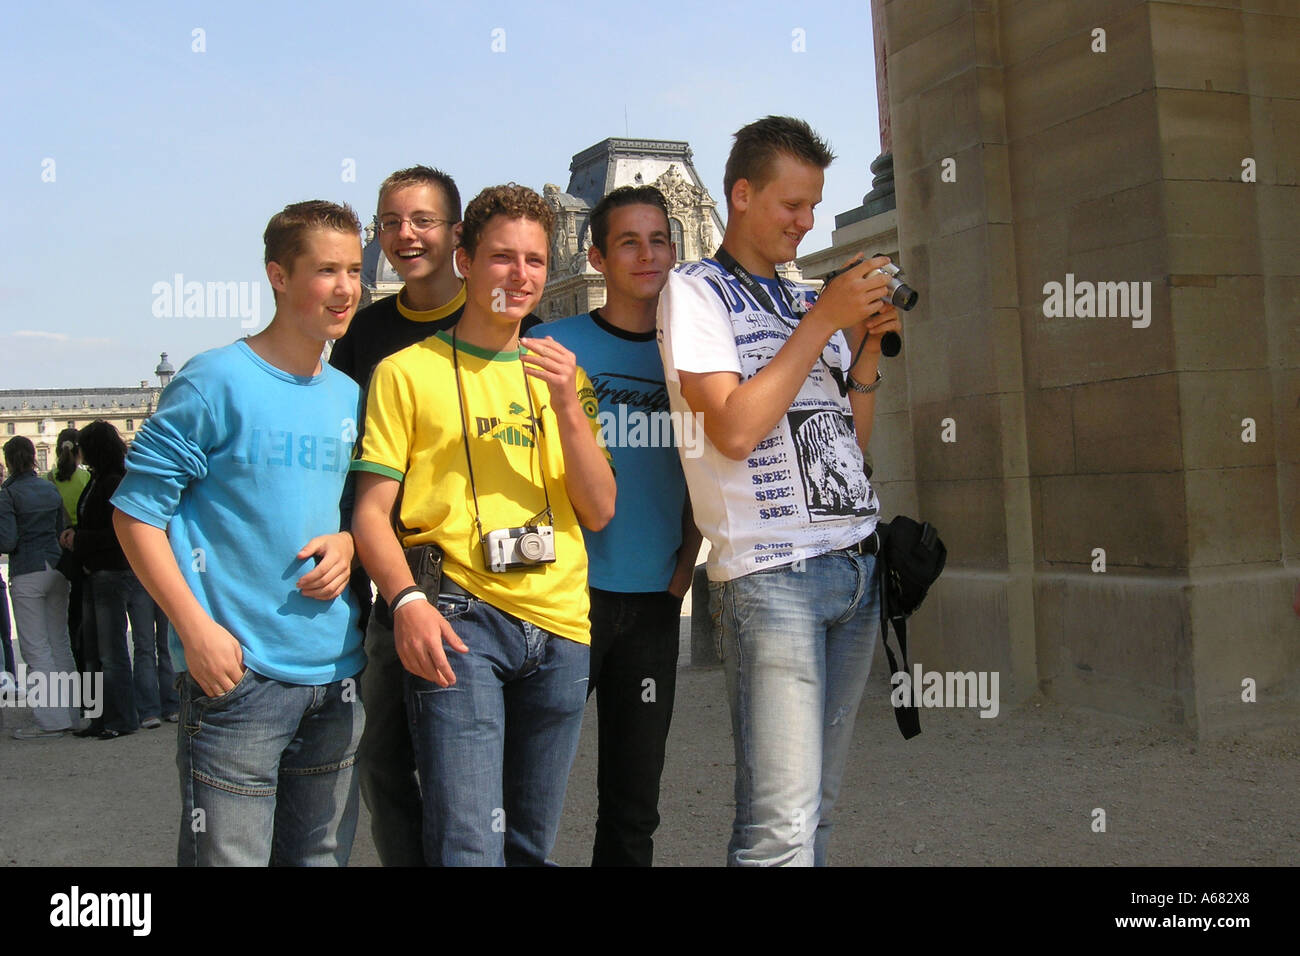 group of adolescent schoolboys posing near Louvre in Tuileries Gardens paris France - Stock Image